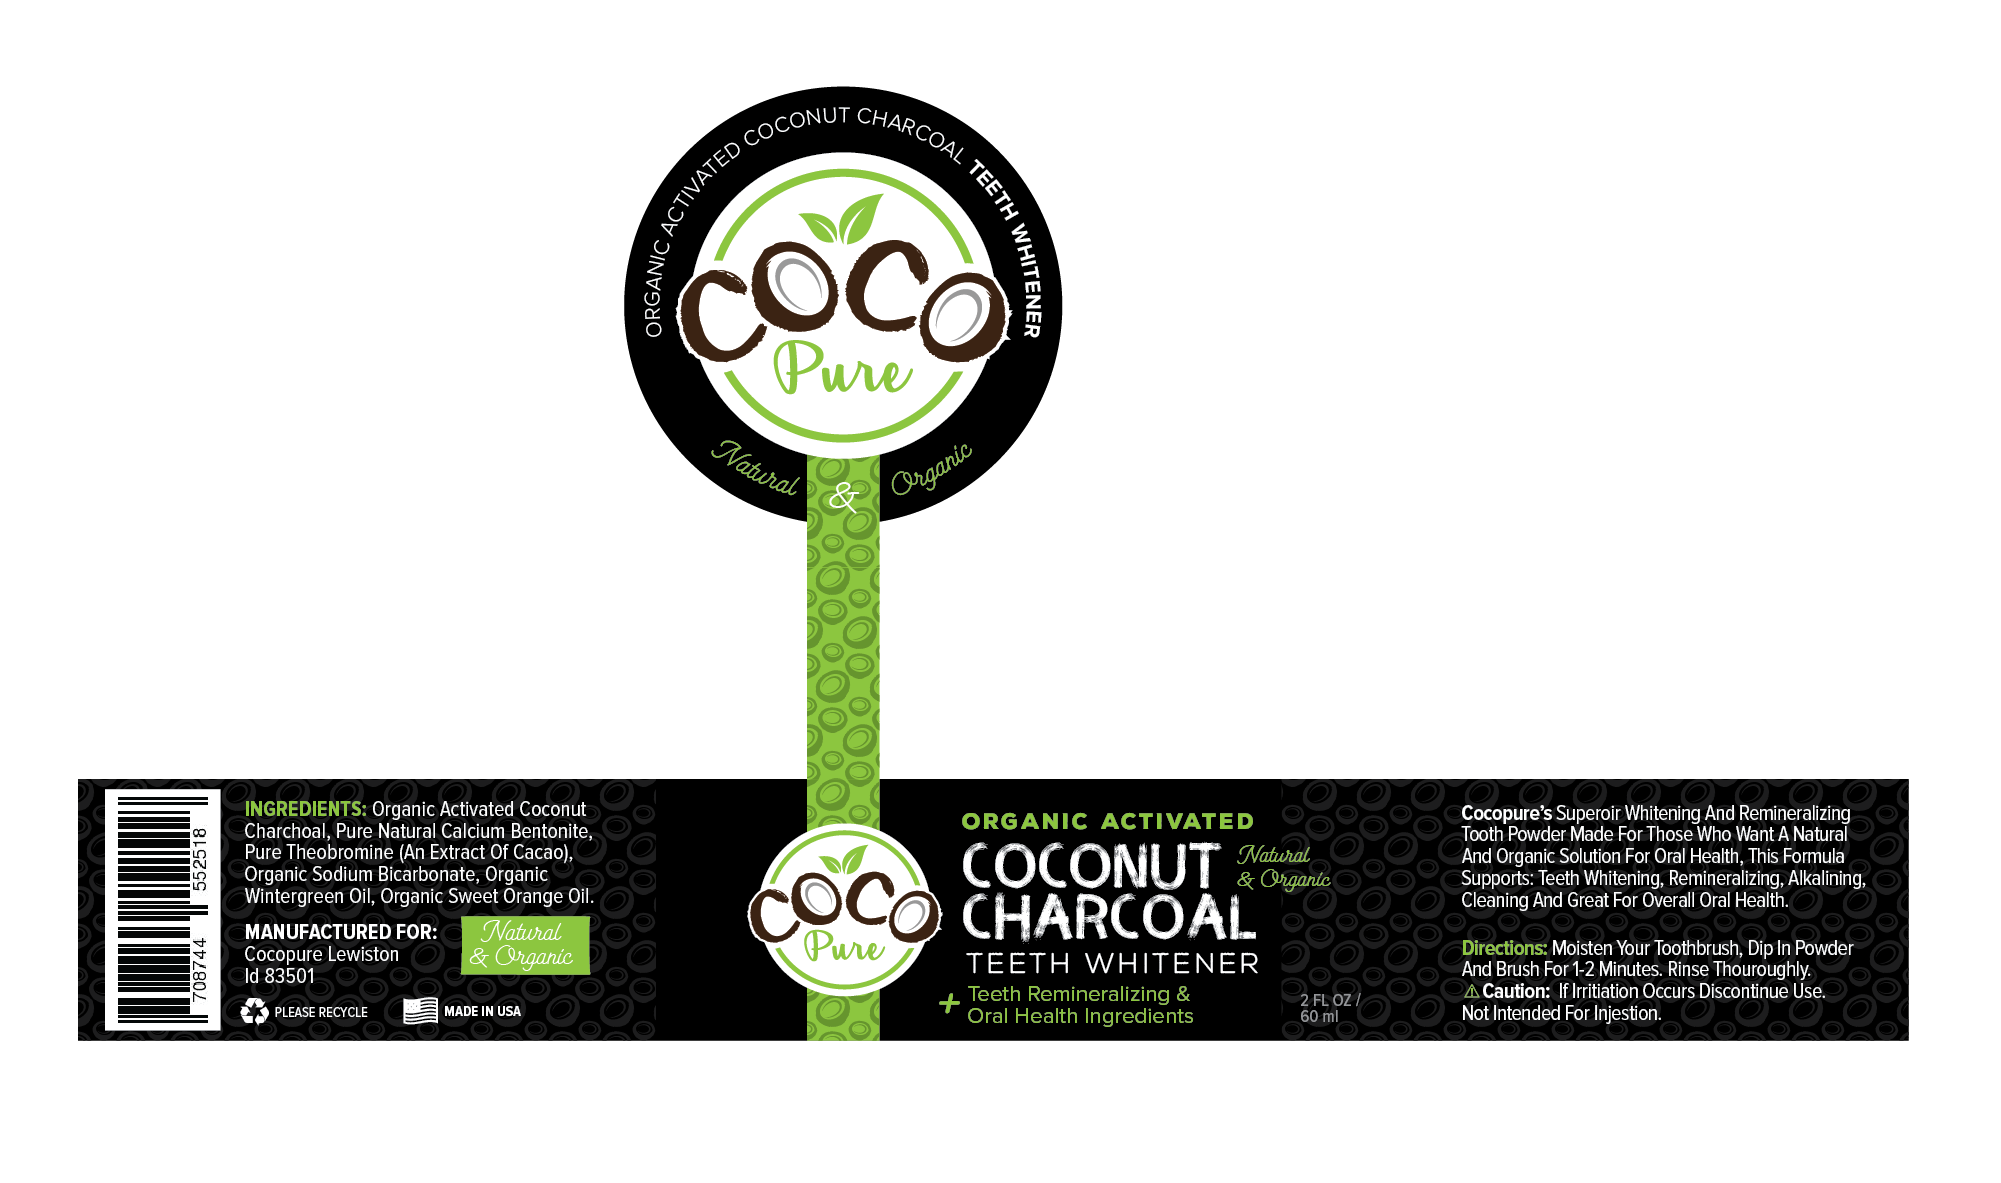 Create Eye Catching Label for Natural and Organic Tooth Powder Company